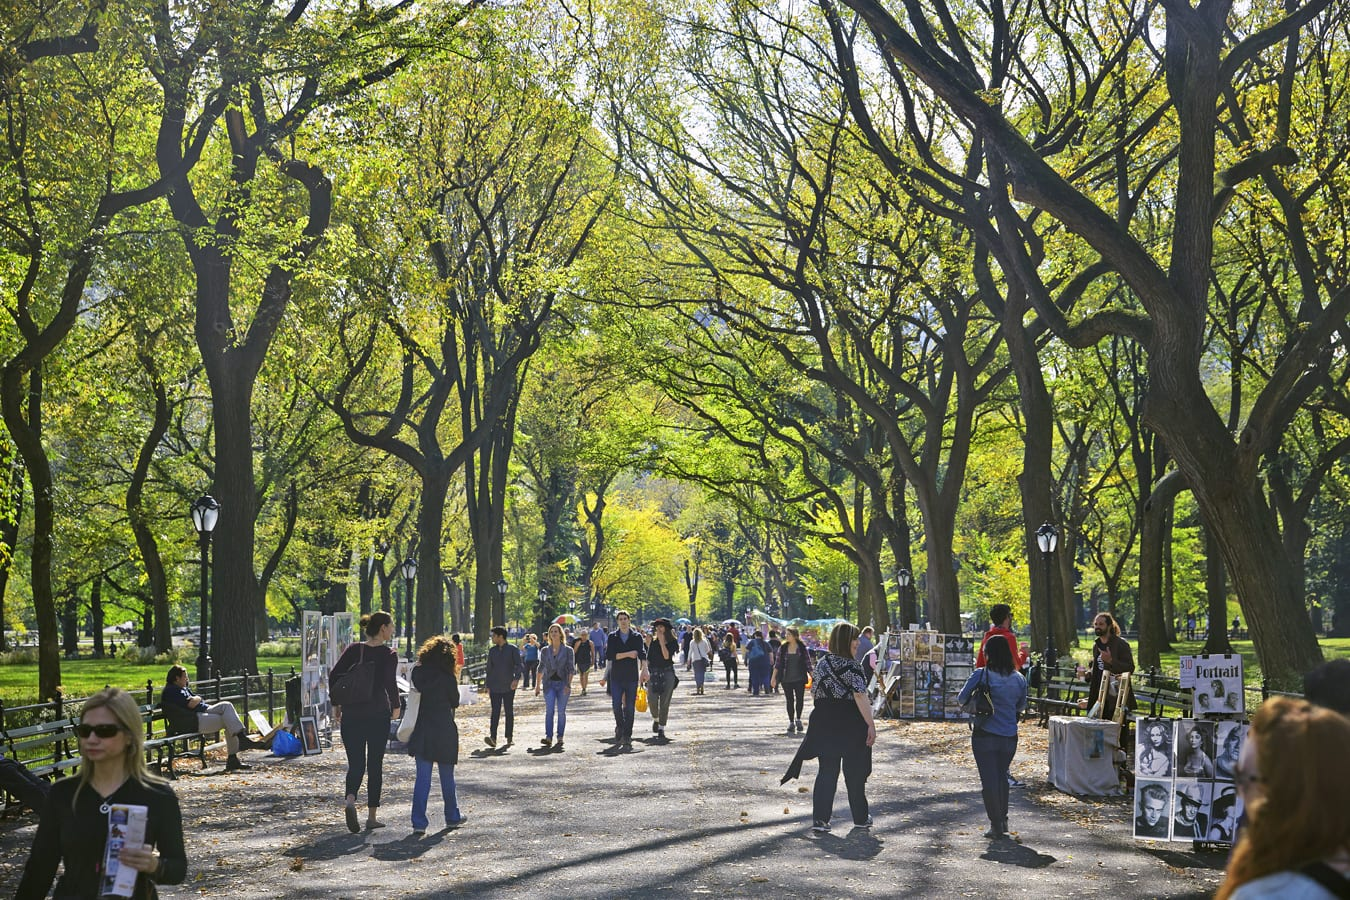 Wide pathway in Central Park in the morning. Many different groups of people are walking down the concrete path.